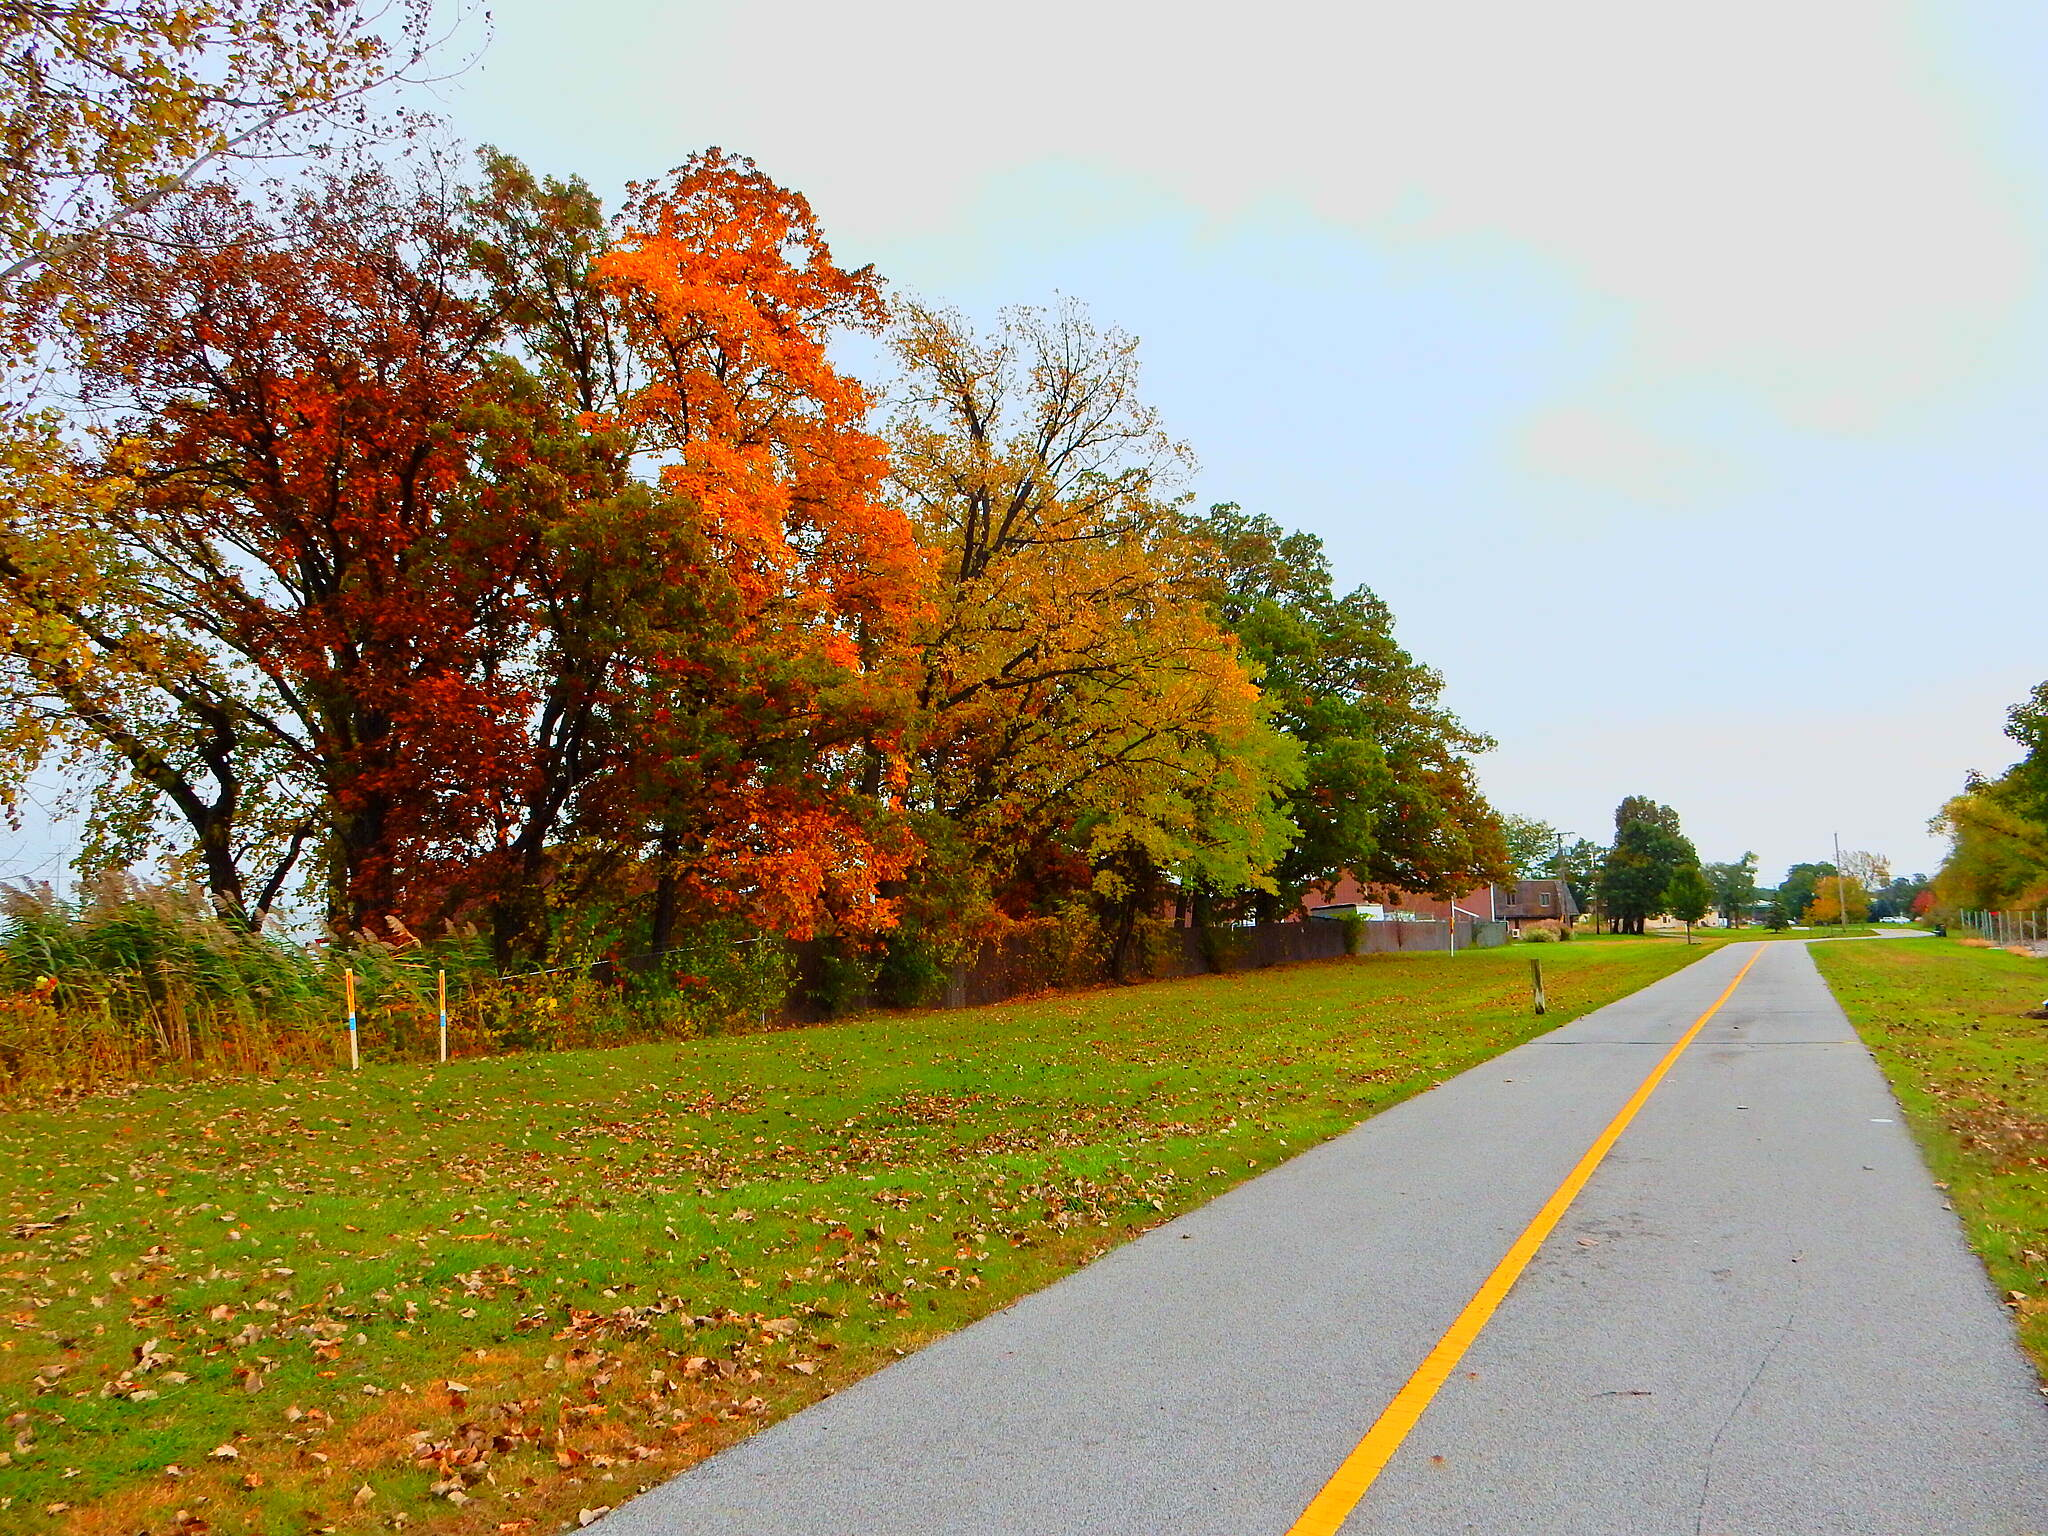 Erie Lackawanna Trail Highland area. North of Downtown Highland. Taken 10-28-16.